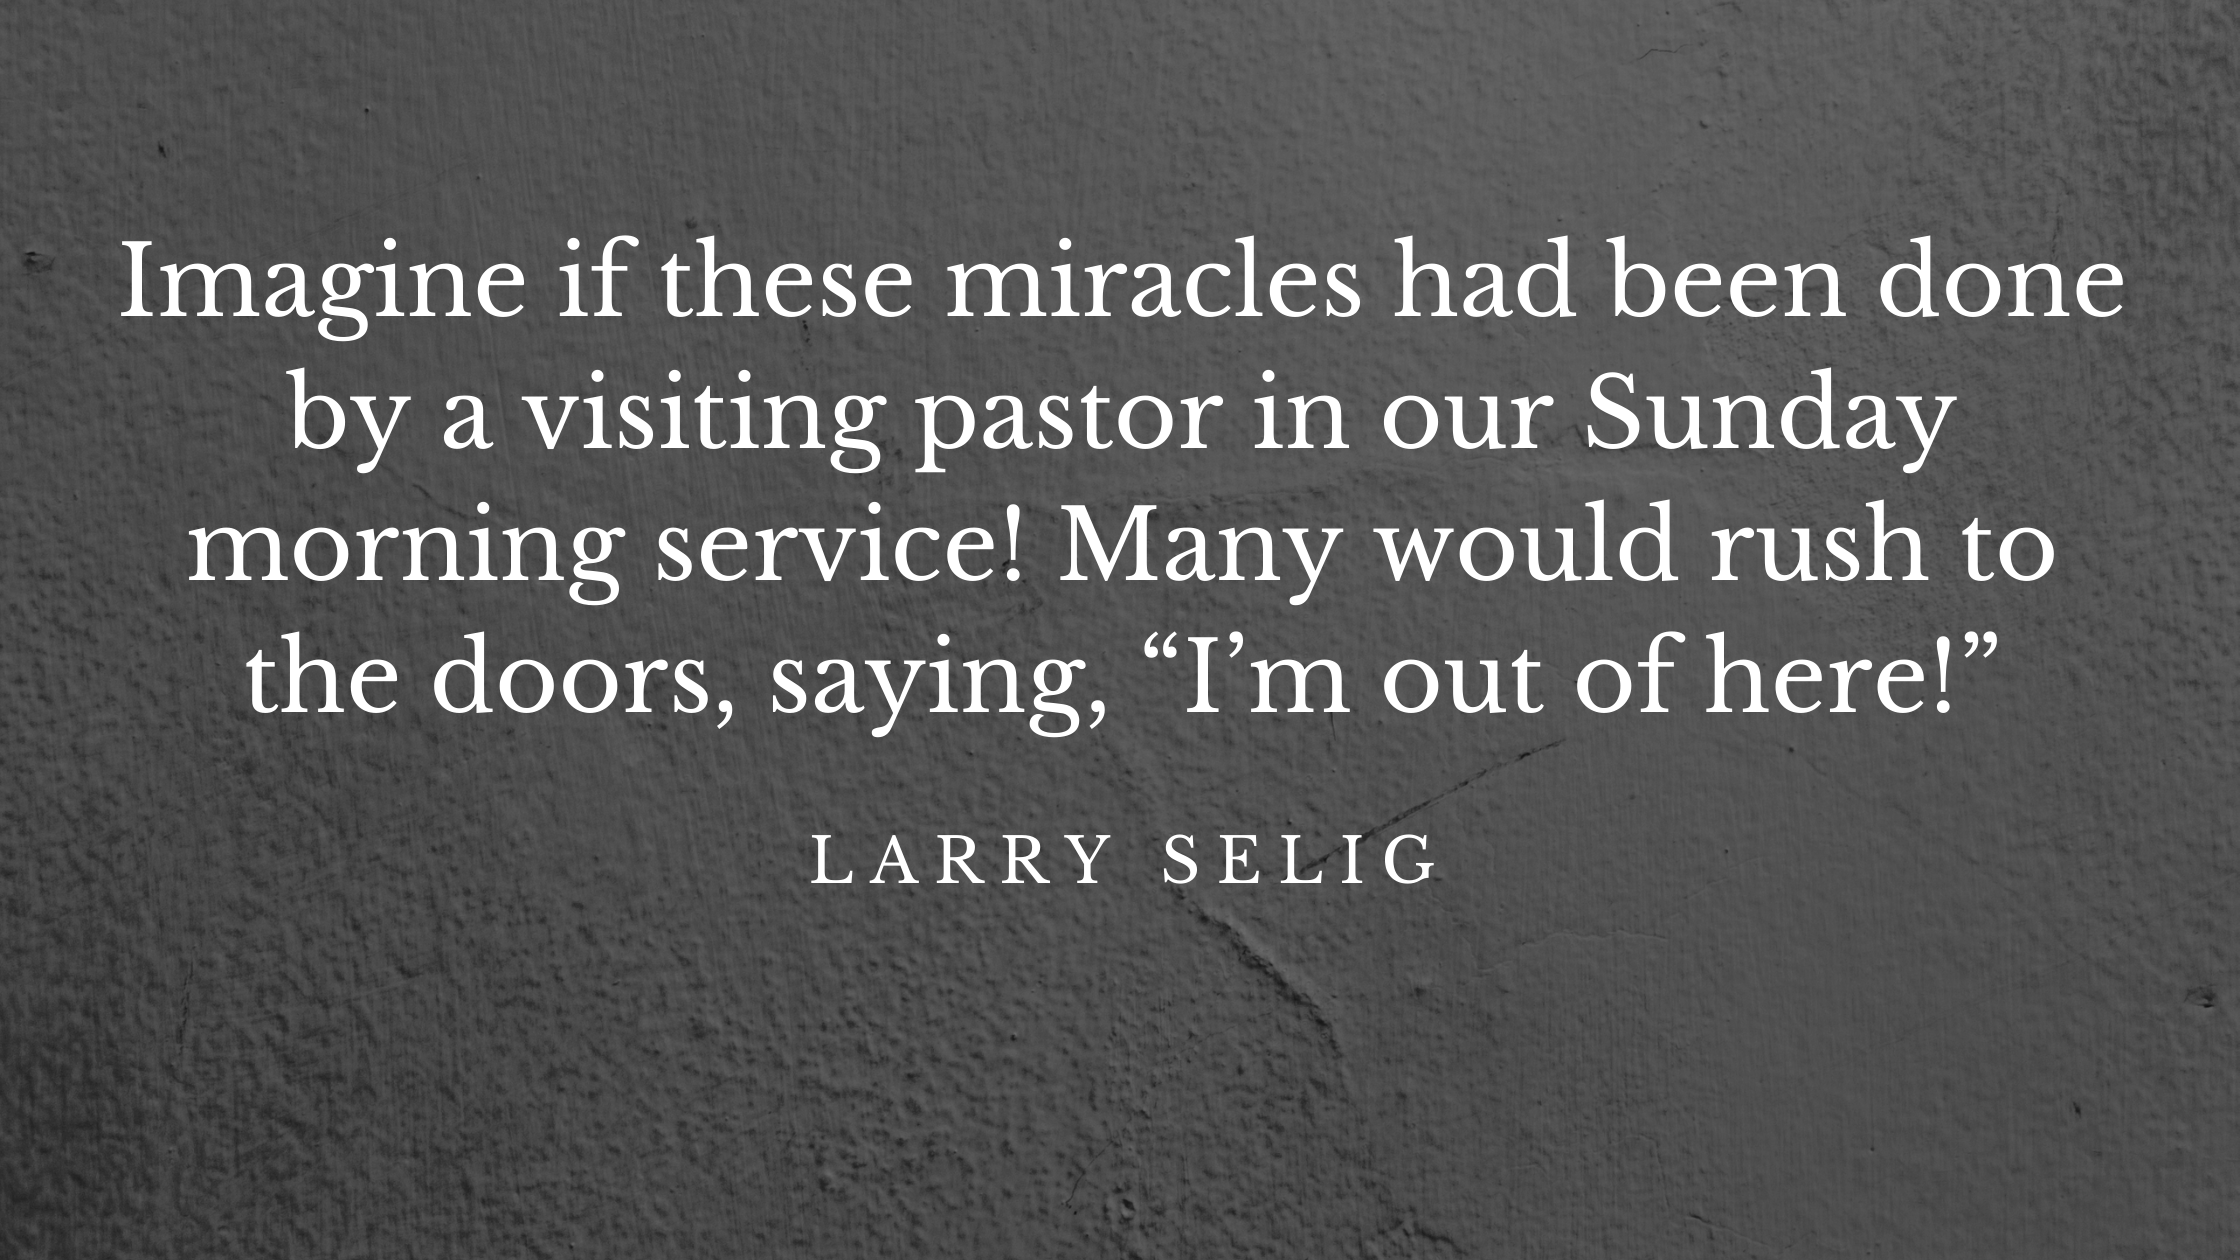 """imagine if these miracles had been done by a visiting pastor in our Sunday morning service! Many would rush to the doors, saying, """"I'm out of here!"""""""